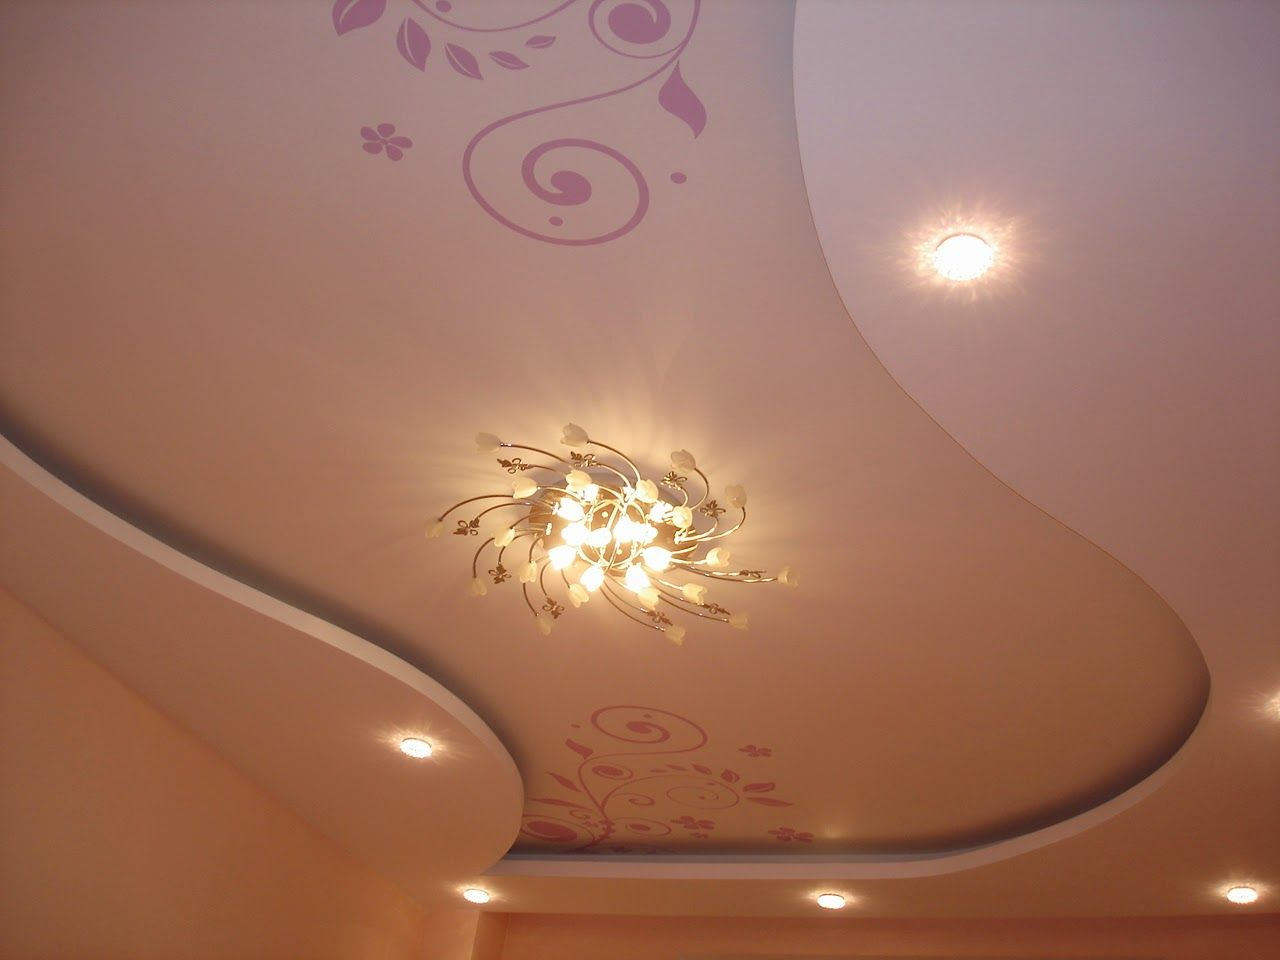 Interesting pop ceiling designs aida homes - Interesting Pop Ceiling Designs Aida Homes